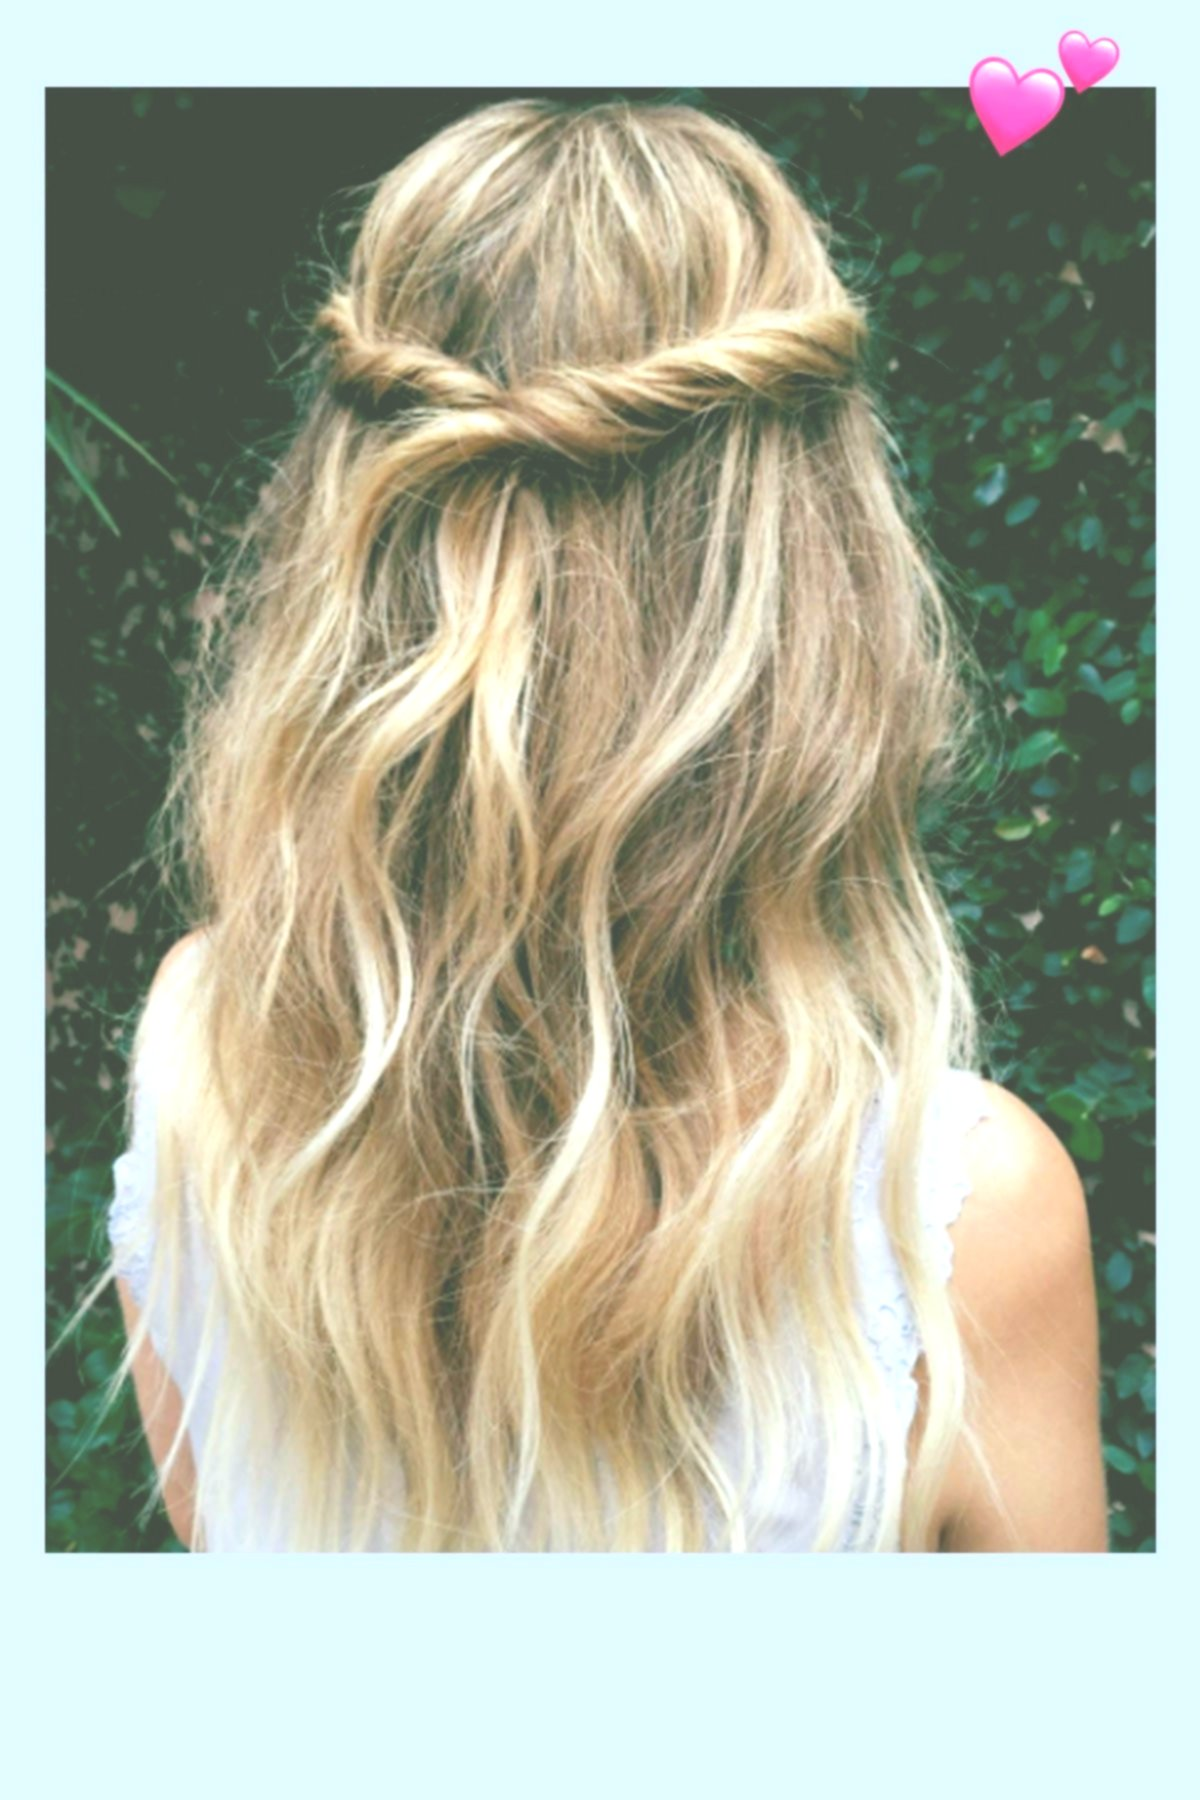 fancy 2018 hairstyles online Lovely 2018 hairstyles collection